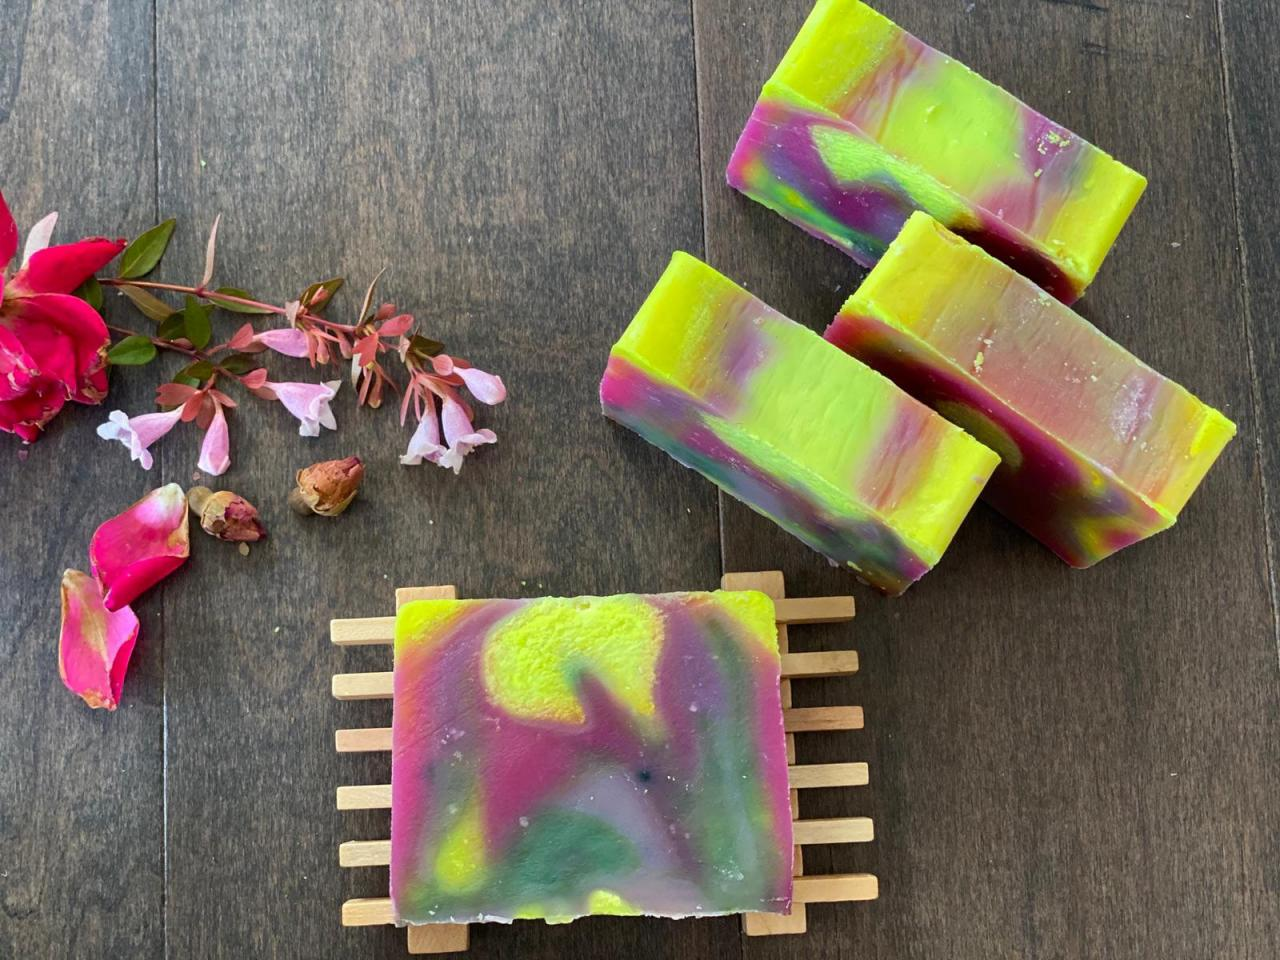 Colorful Natural Handmade Soap, DUPATTA SOAP with Free Facemask, Artisan Soap